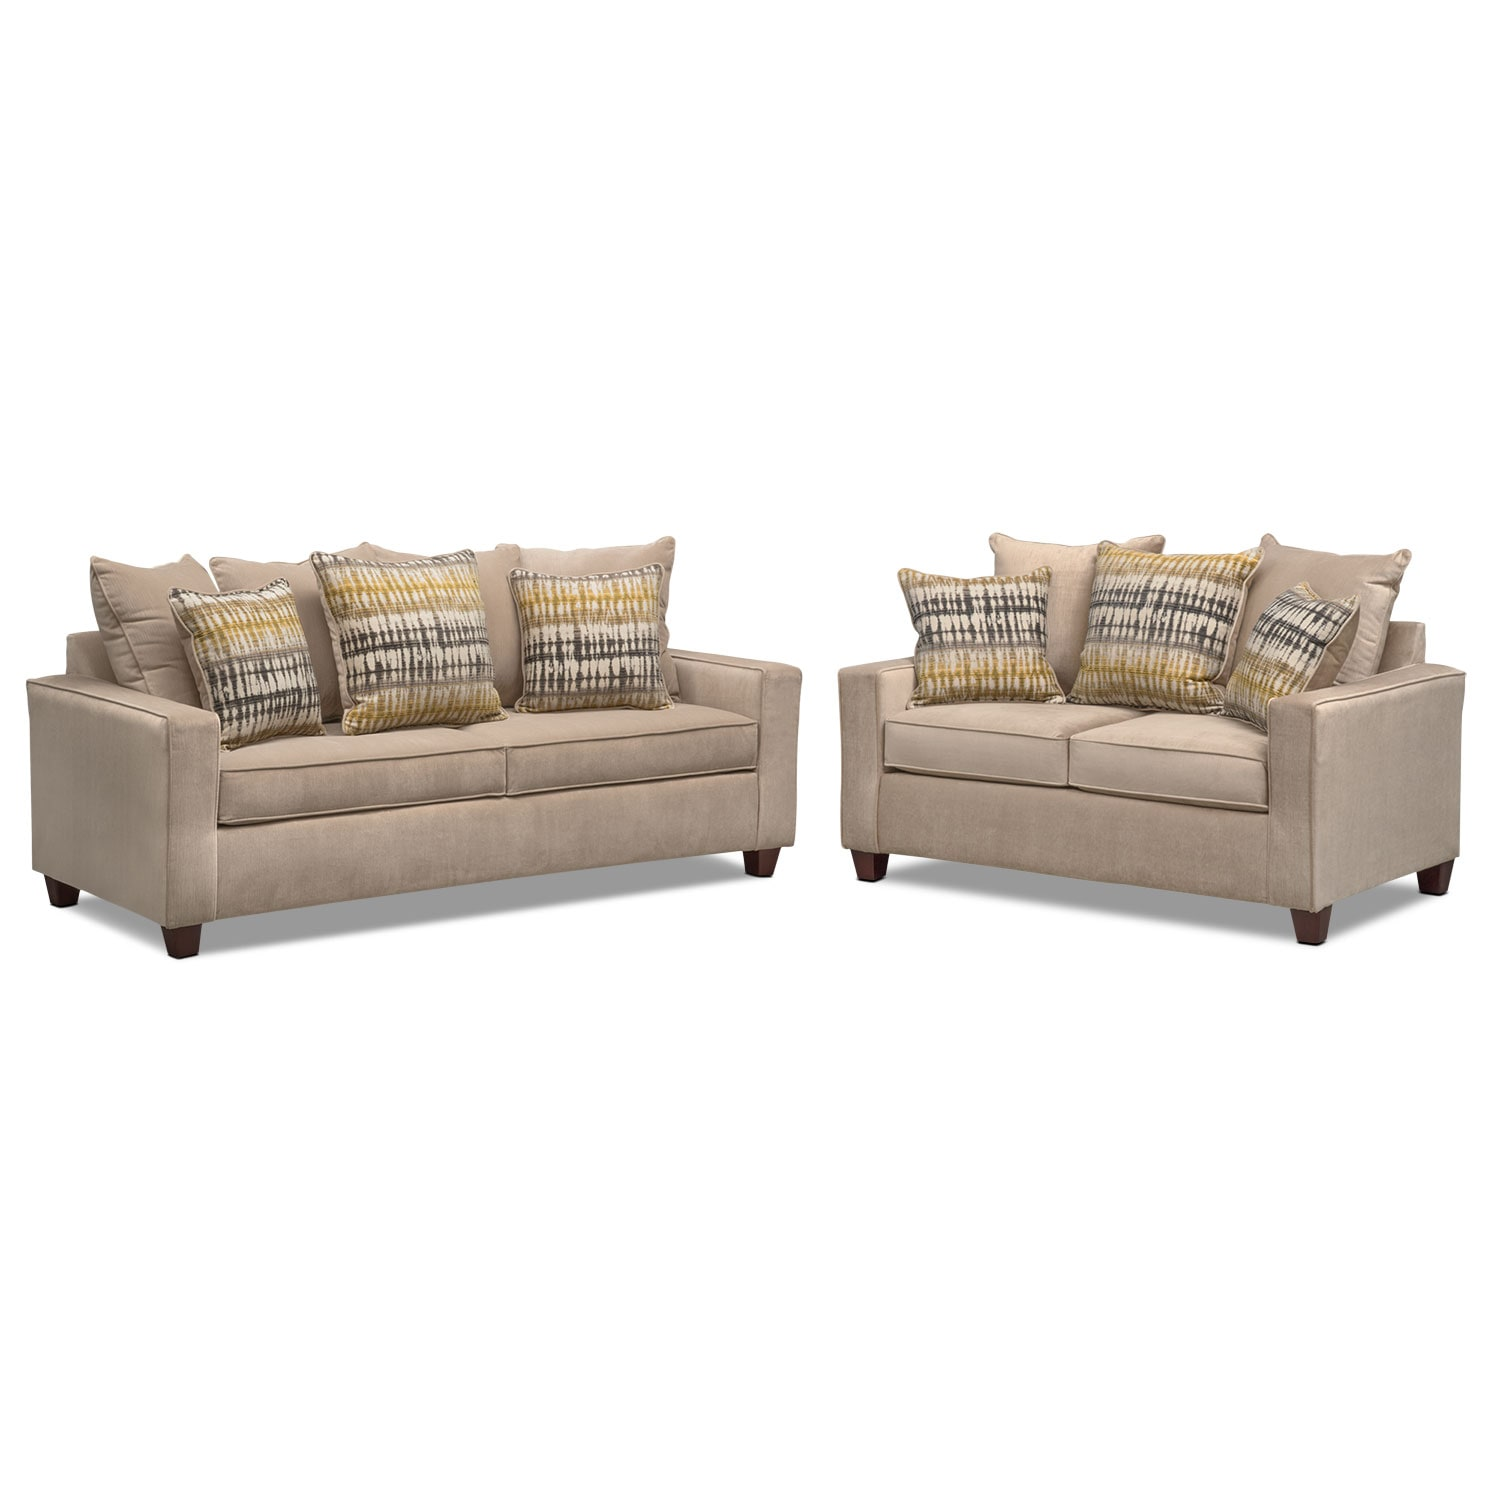 Bryden Sofa And Loveseat Set Beige Value City Furniture